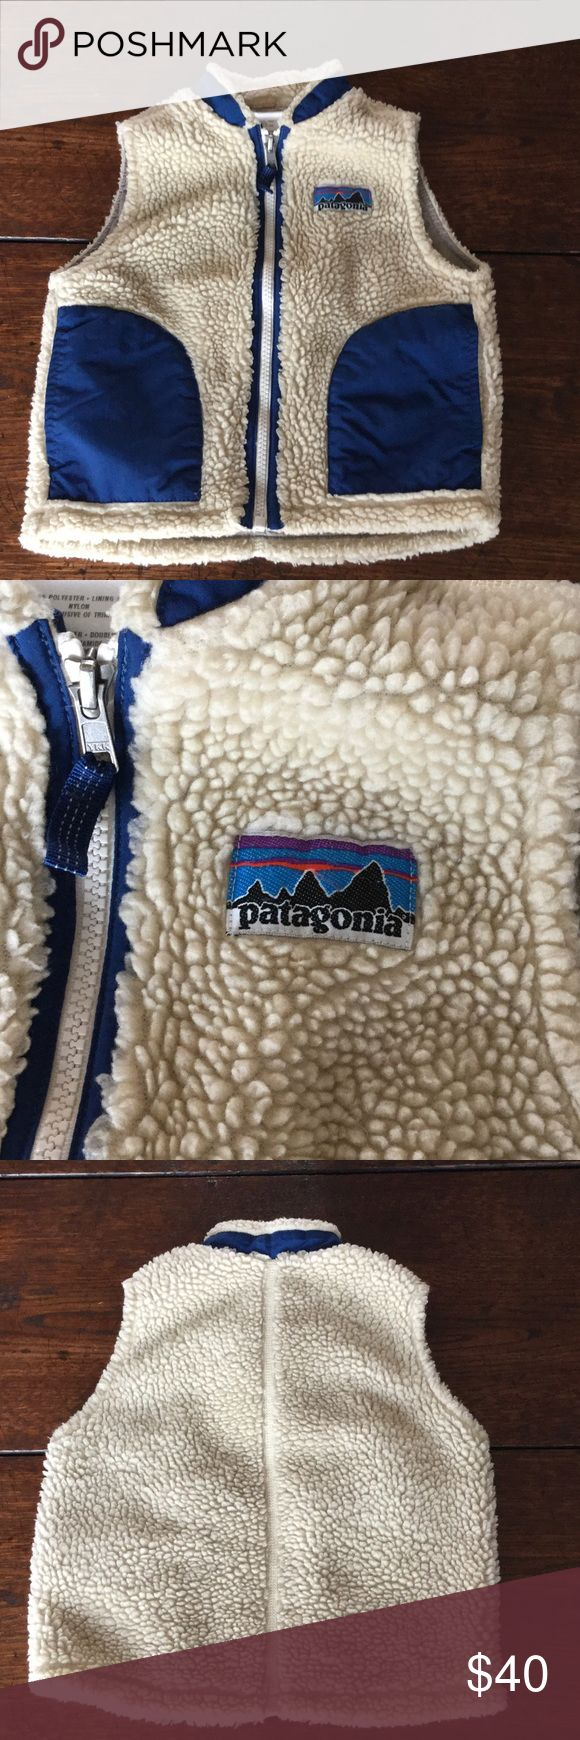 Patagonia Fleece Vest Wind proof Patagonia Fleece vest. Great condition! Keep your little one warm and stylish! Patagonia Jackets & Coats Vests